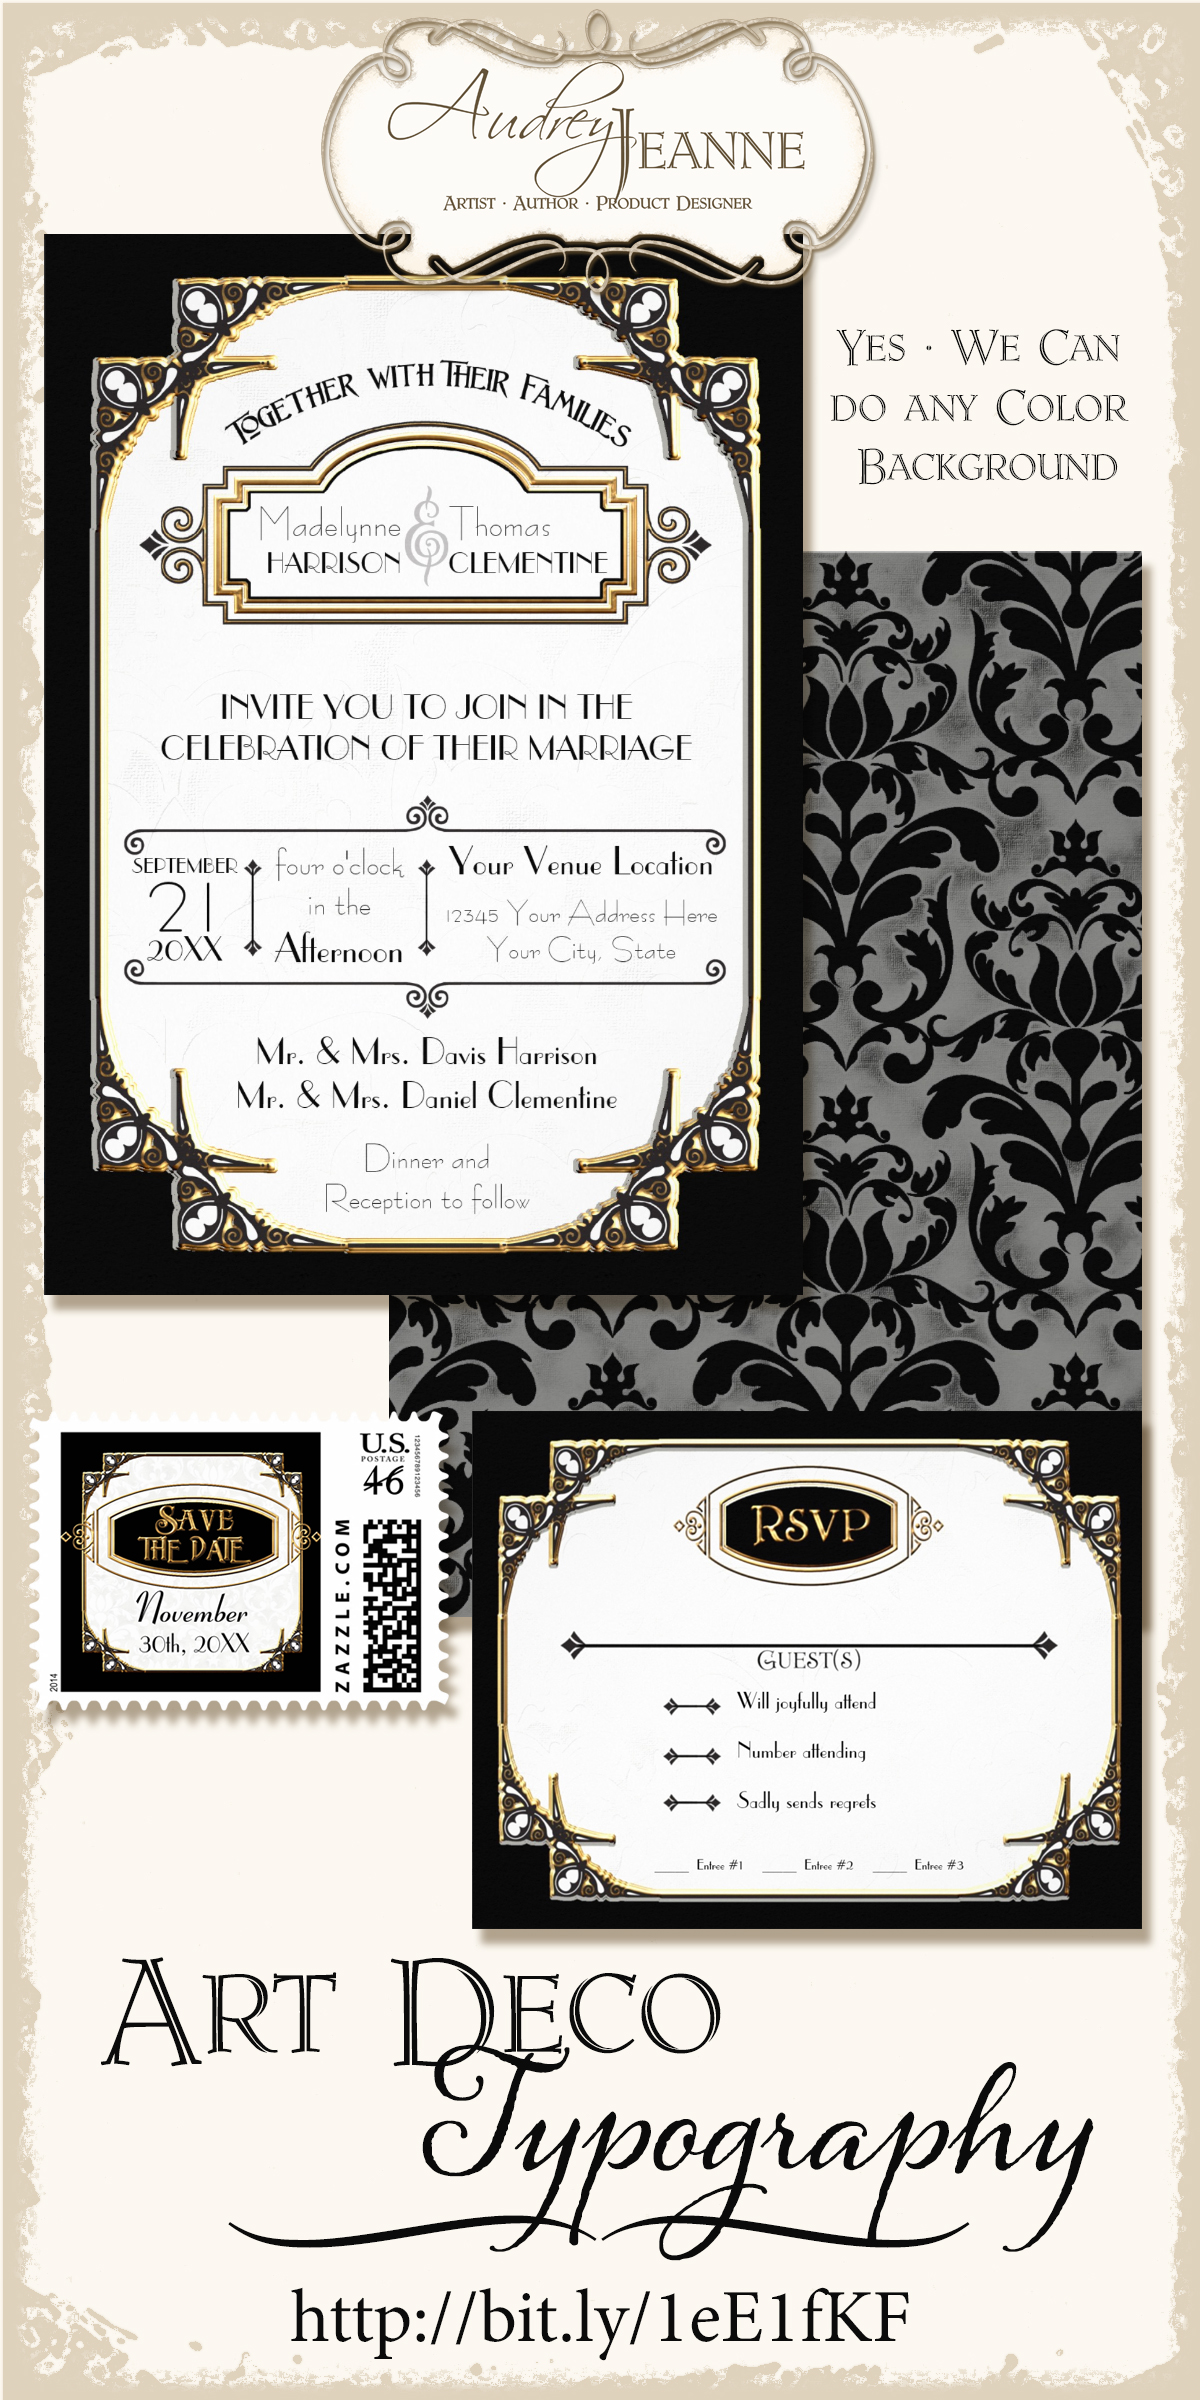 Our Newest Art Deco Wedding Invitations | Audrey Jeanne\'s Expressions